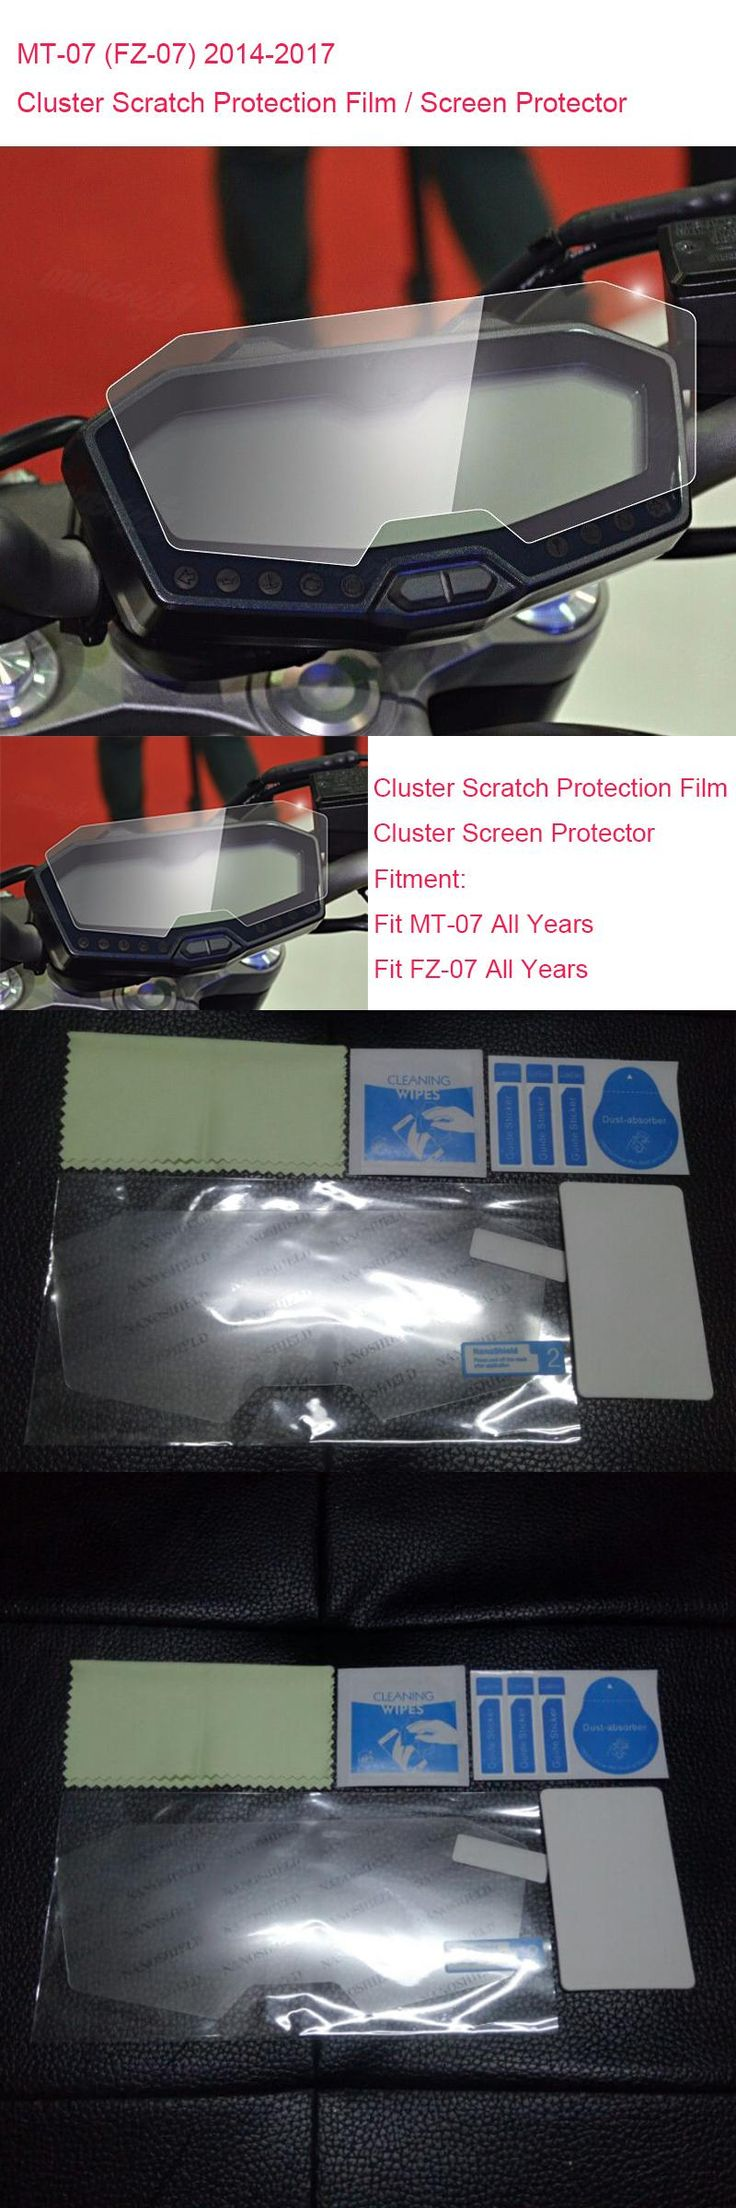 [Visit to Buy] New For Yamaha MT-07 FZ-07 MT07 Cluster Scratch Protection Film Screen Protector for Yamaha FZ07 MT 07 2014 2015 2016 2017 #Advertisement